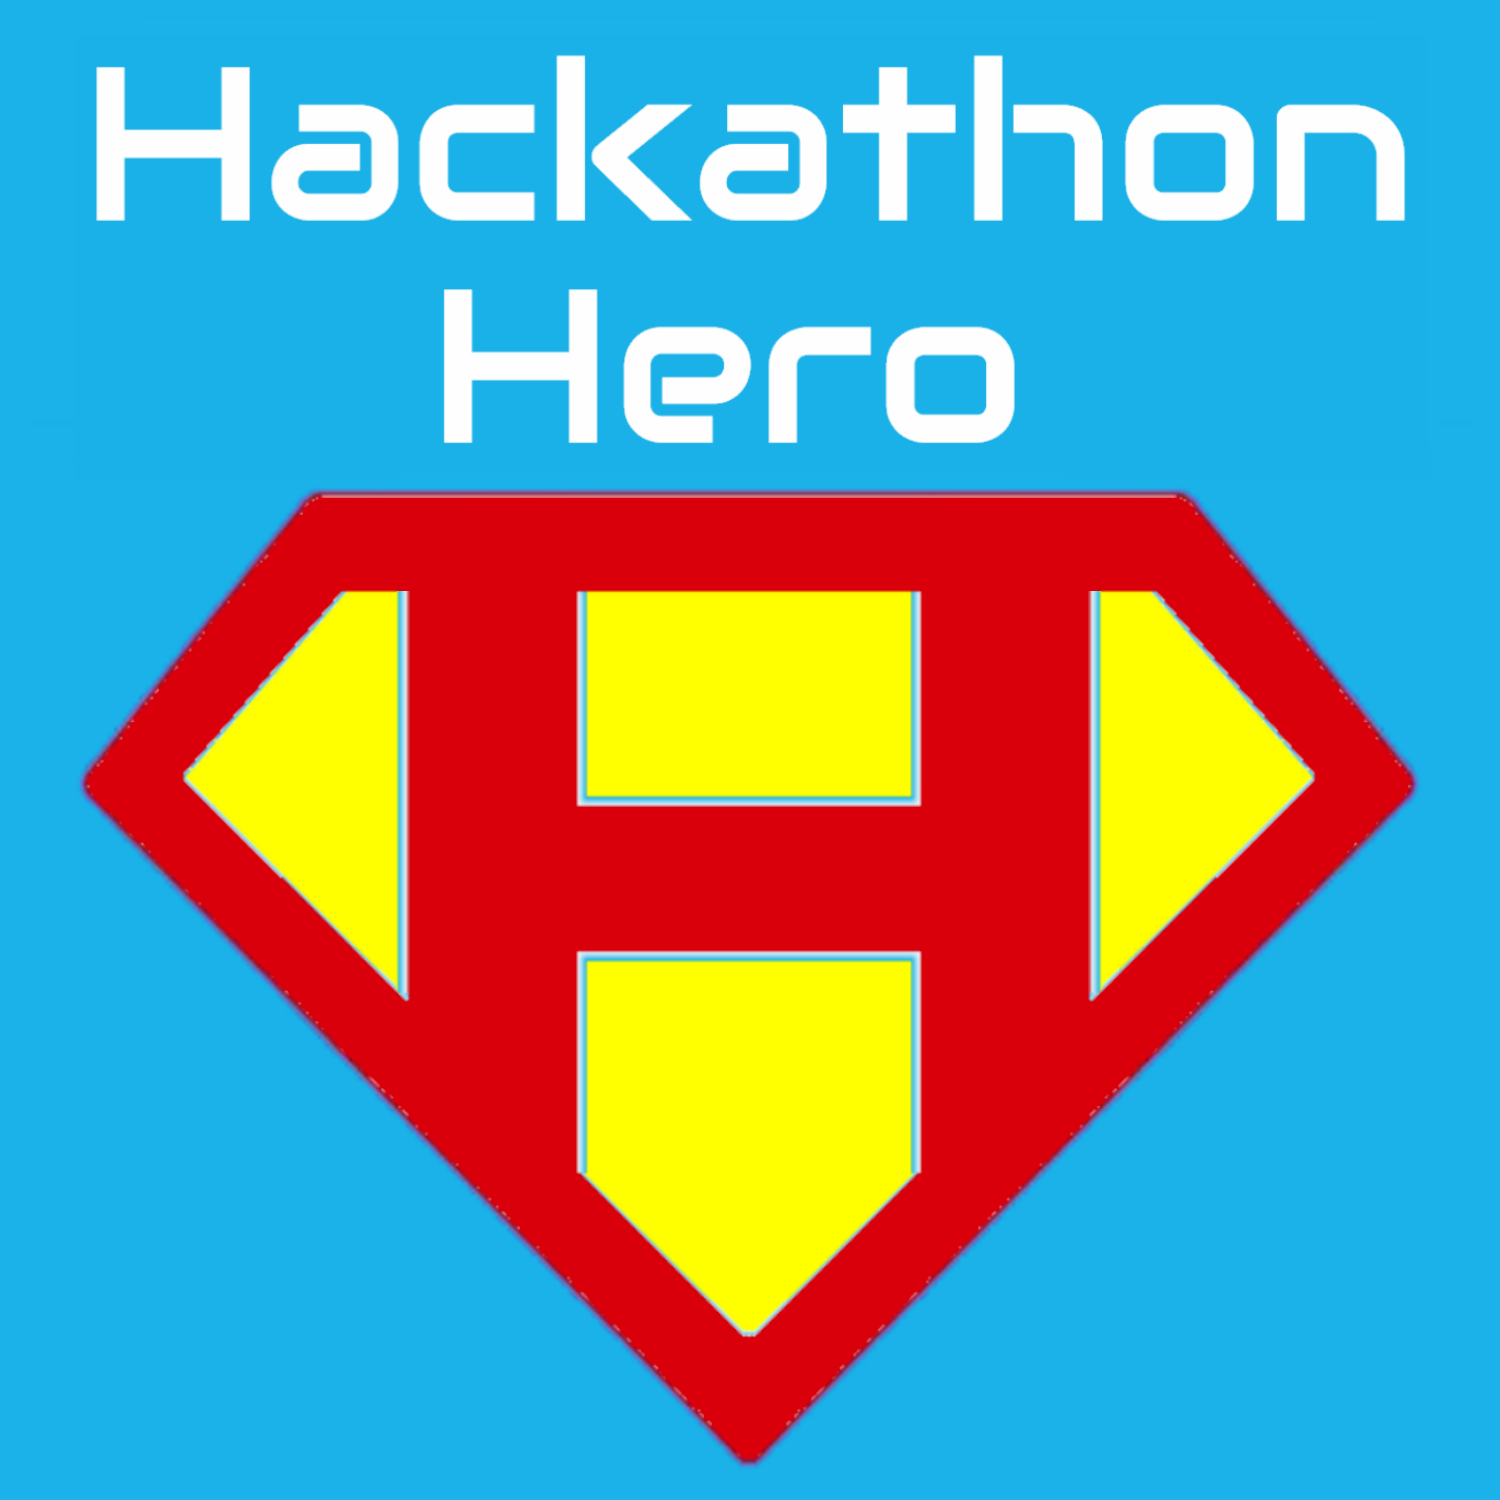 Hackathon Hero